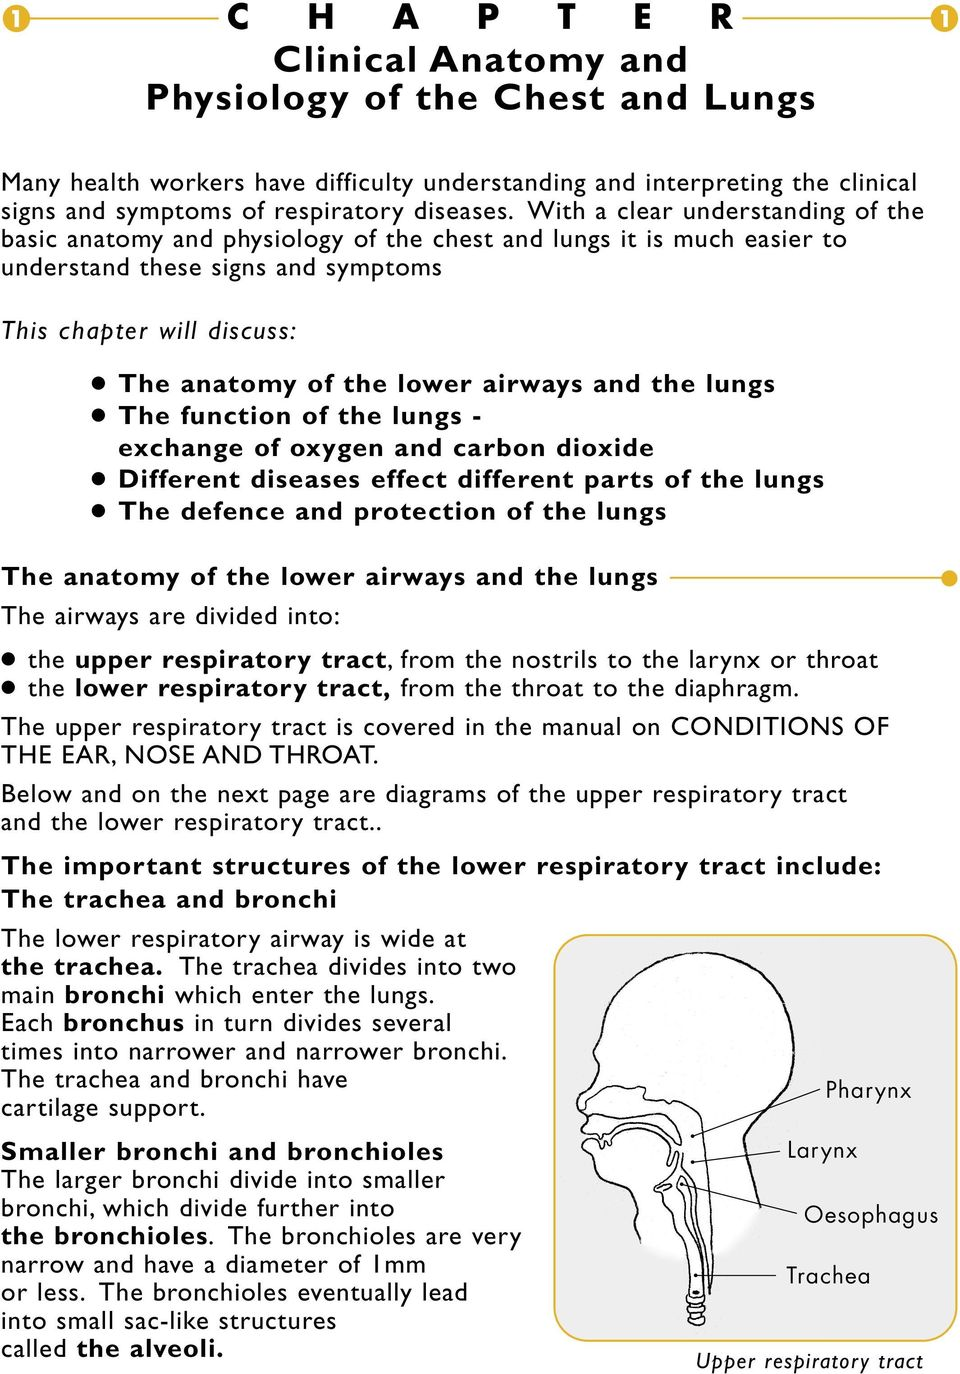 Clinical Anatomy and Physiology of the Chest and Lungs - PDF